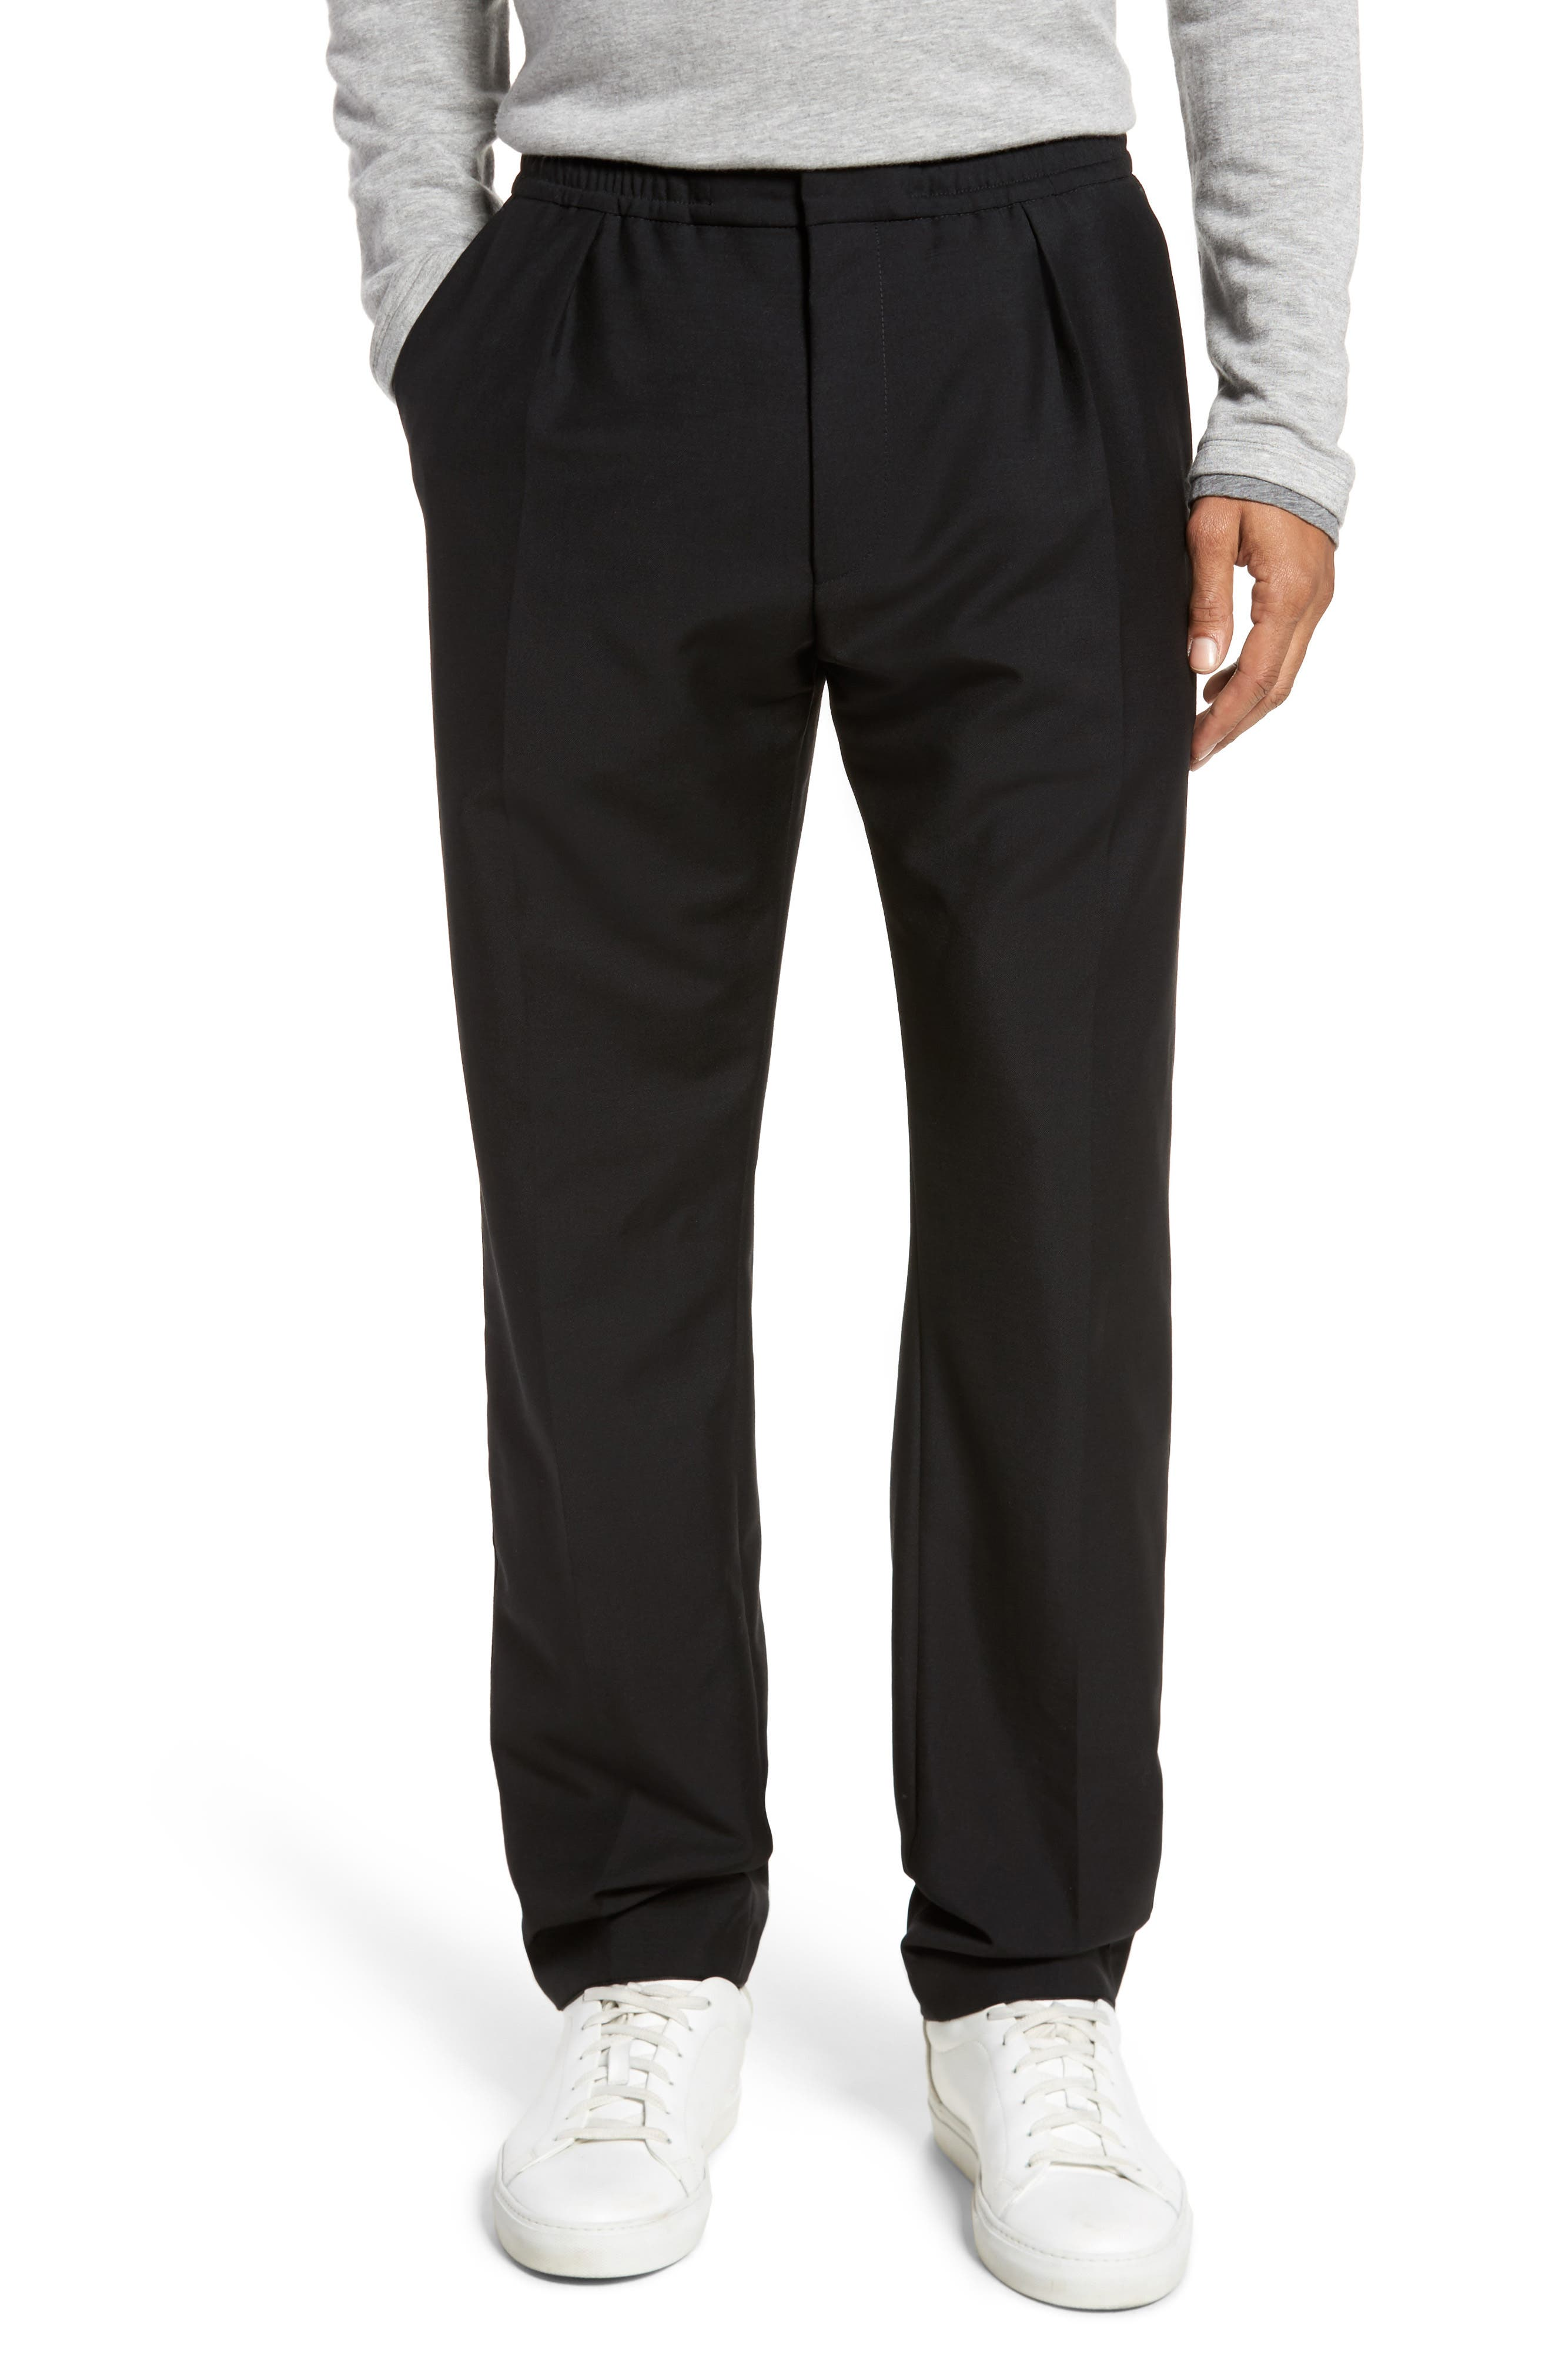 Payton Pleated Solid Wool & Mohair Jogger Trousers,                             Main thumbnail 1, color,                             001